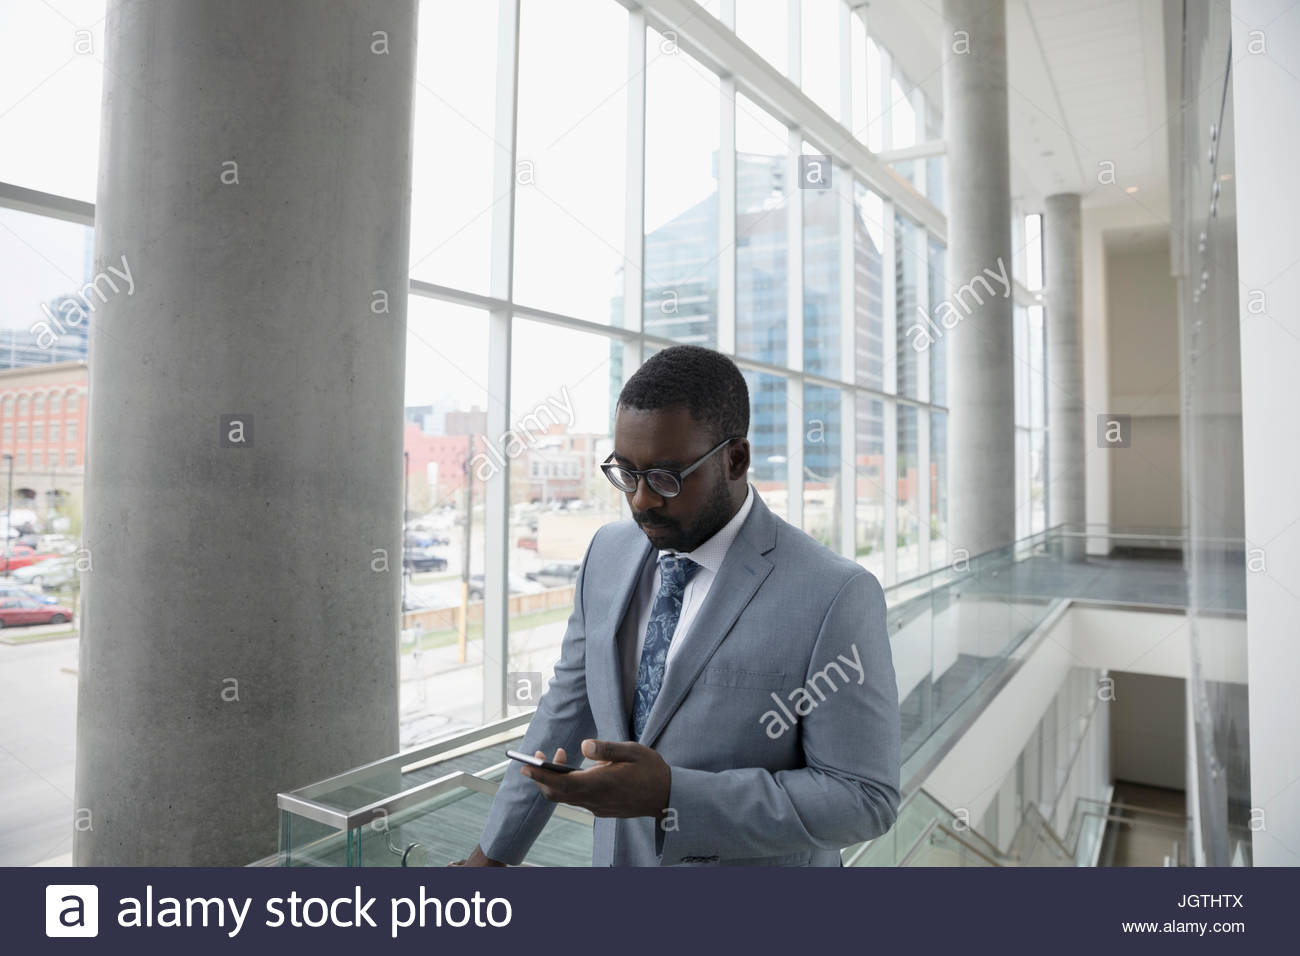 Businessman texting with cell phone in office - Stock Image